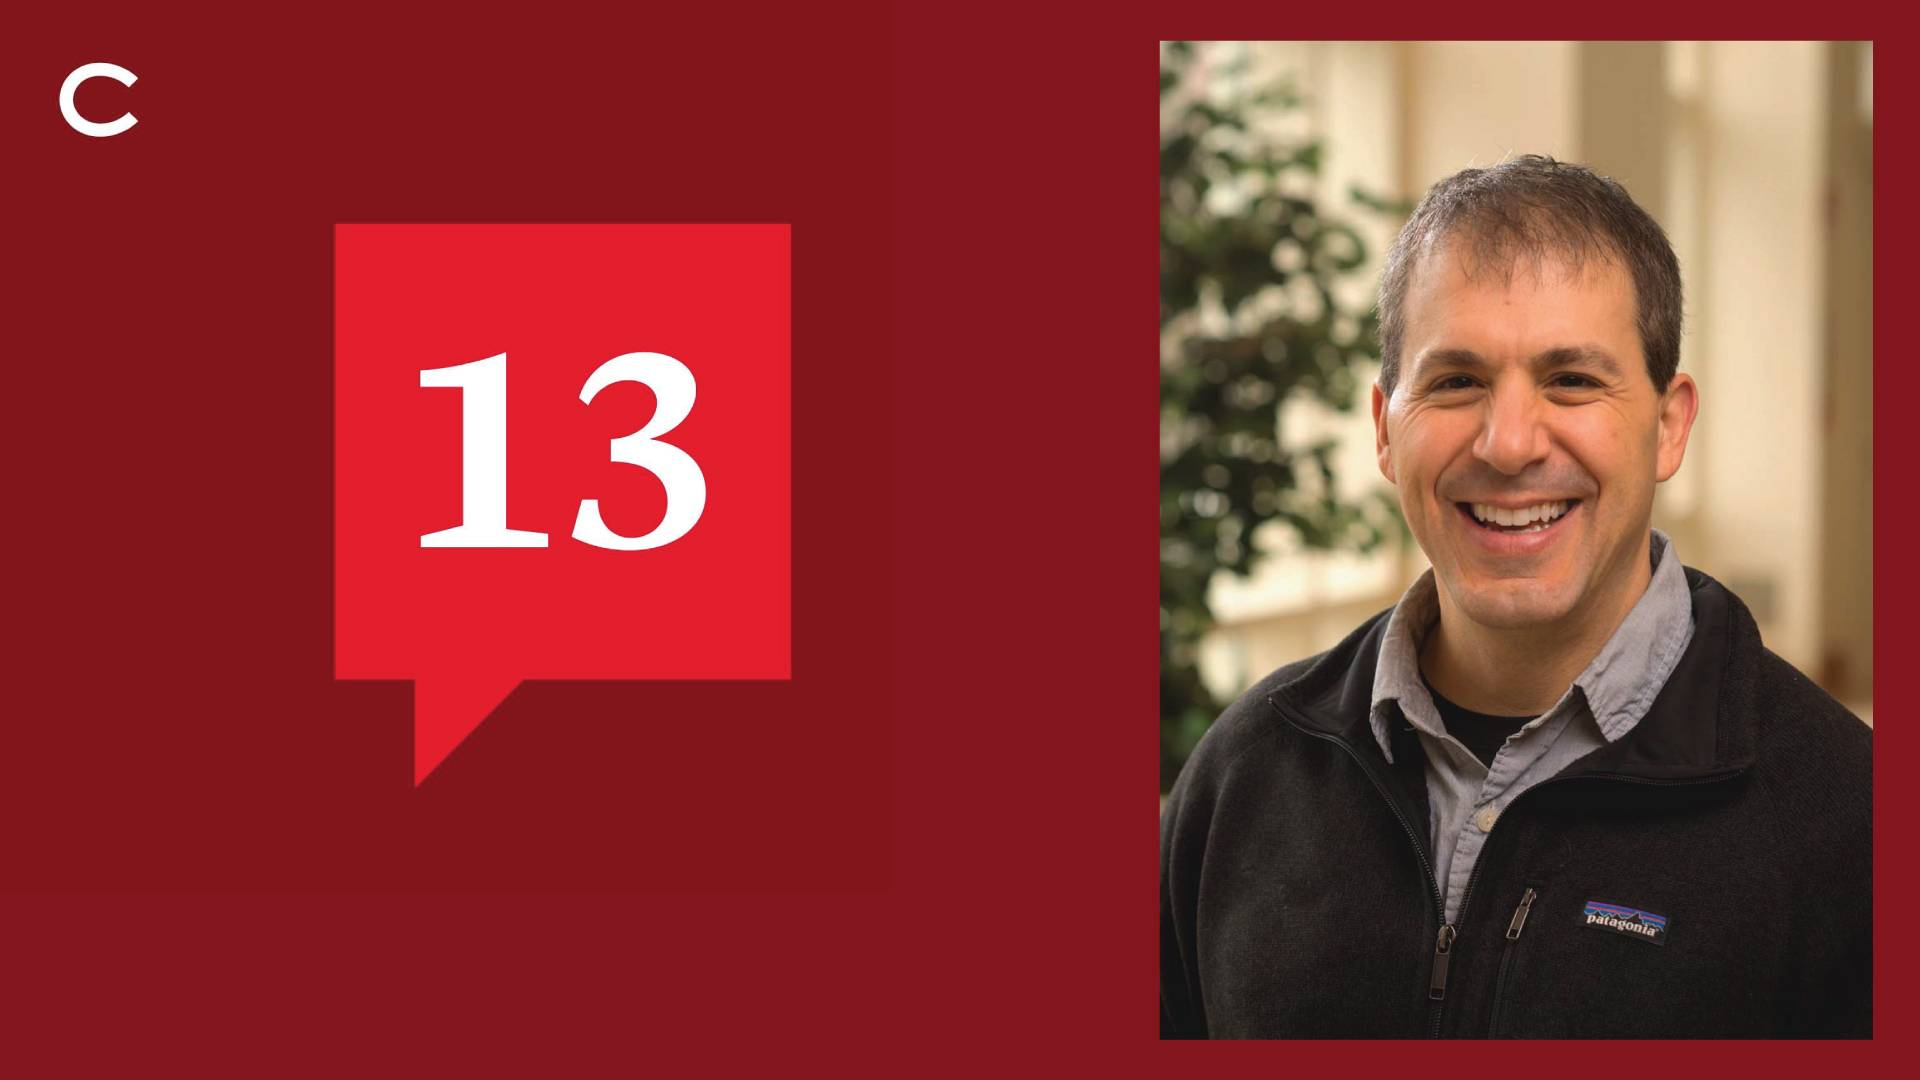 Colgate Director of Sustainability John Pumilio is the latest community member to be featured on Colgate's newest podcast, 13.